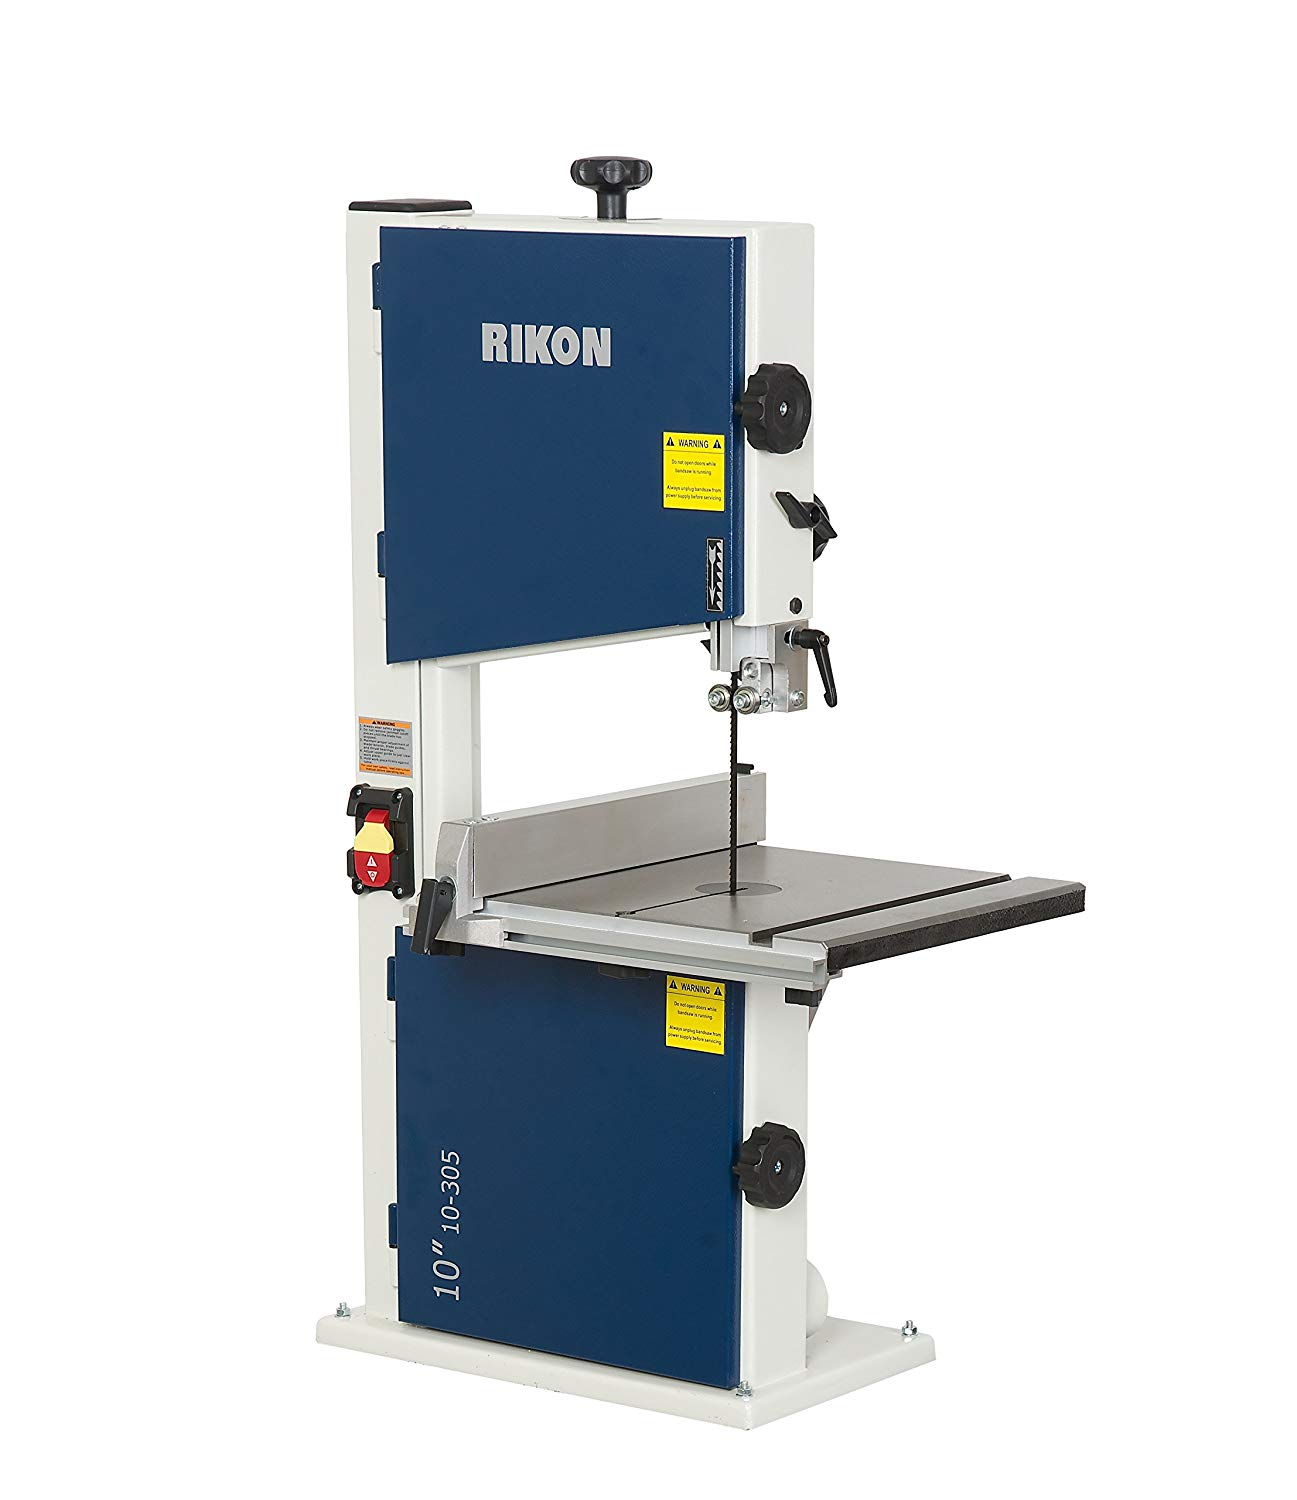 Rikon Bandsaw With Fence